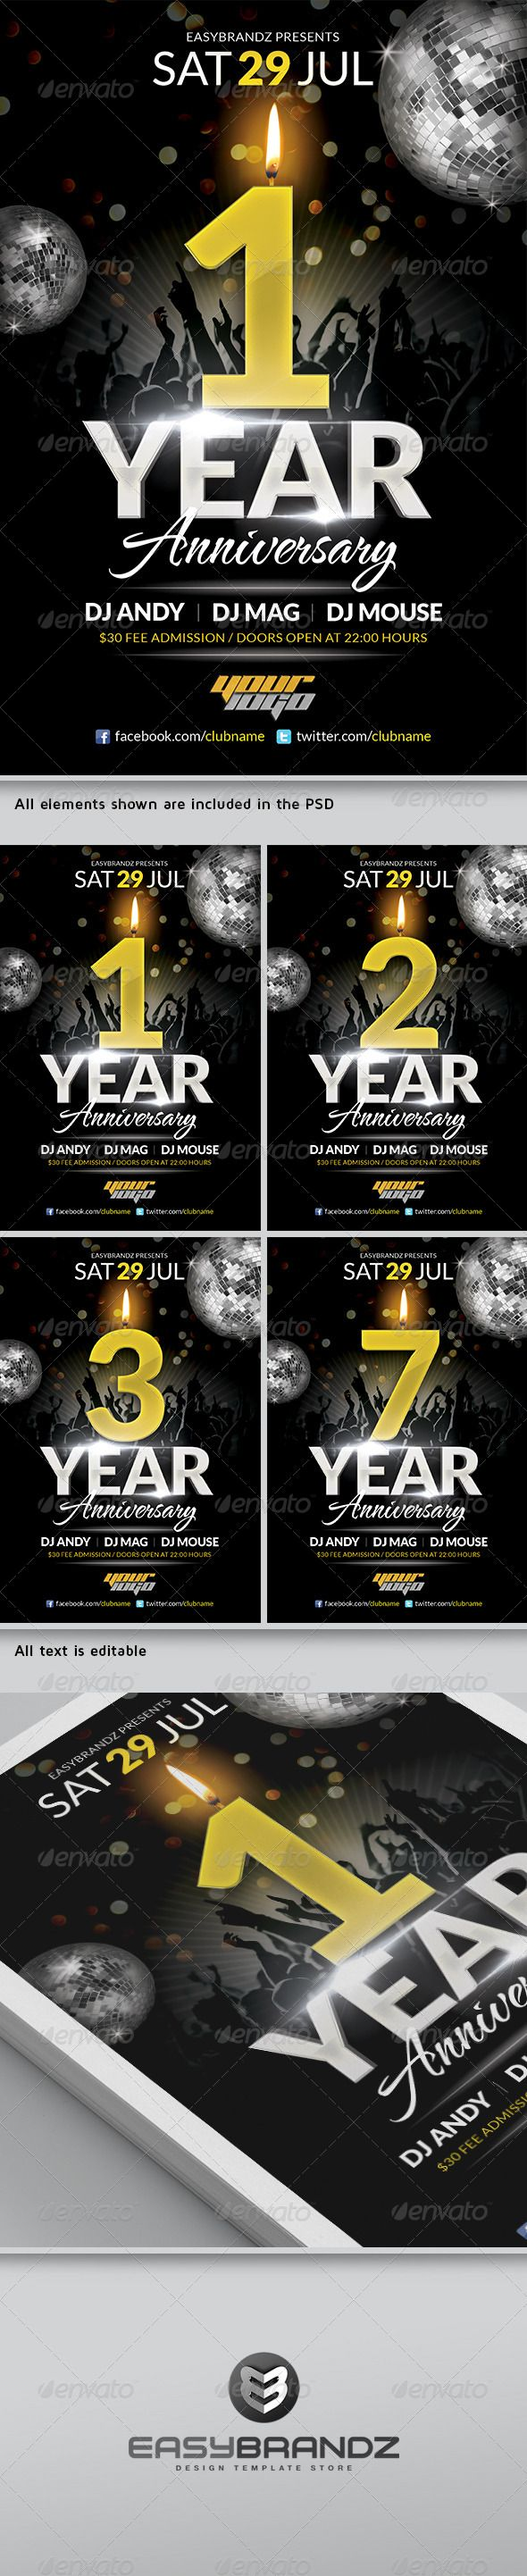 anniversary flyer template events flyers 2014 pinterest